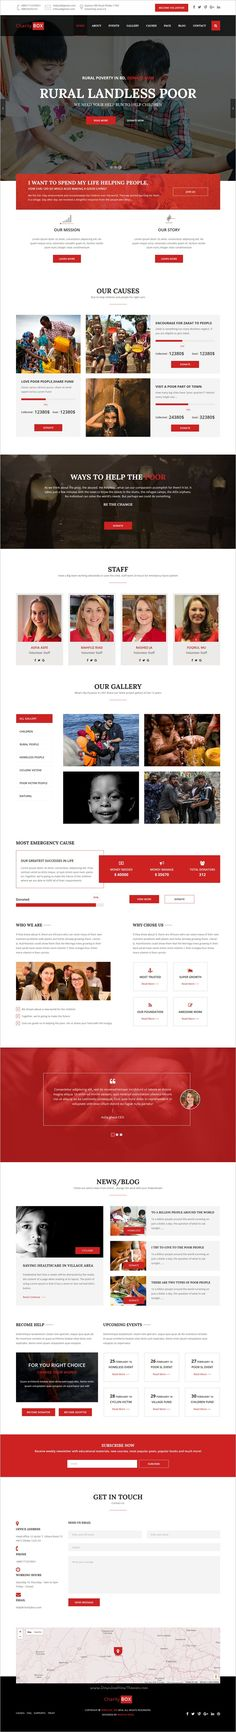 CherityBox is a perfect 3 in 1 #bootstrap #HTML5 template suitable for #Charity, NGO, non-profit organization, donation, Cause, Fundraising website download now➩  https://themeforest.net/item/cheritybox-charity-nonprofit-html5-template/18791271?ref=Datasata